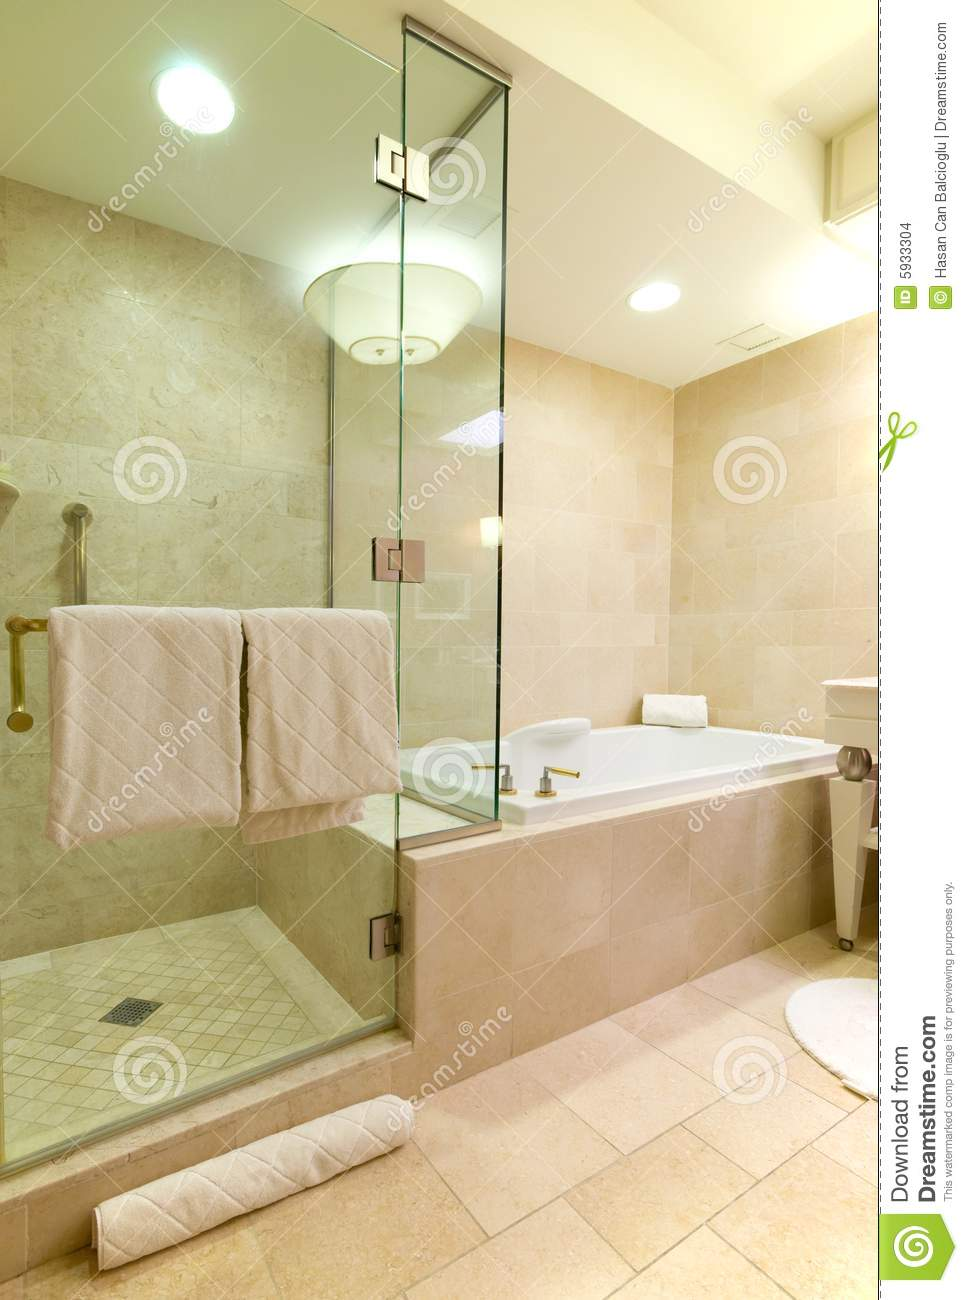 Luxury hotel bathroom stock images image 5933304 for Y hotel shared bathroom